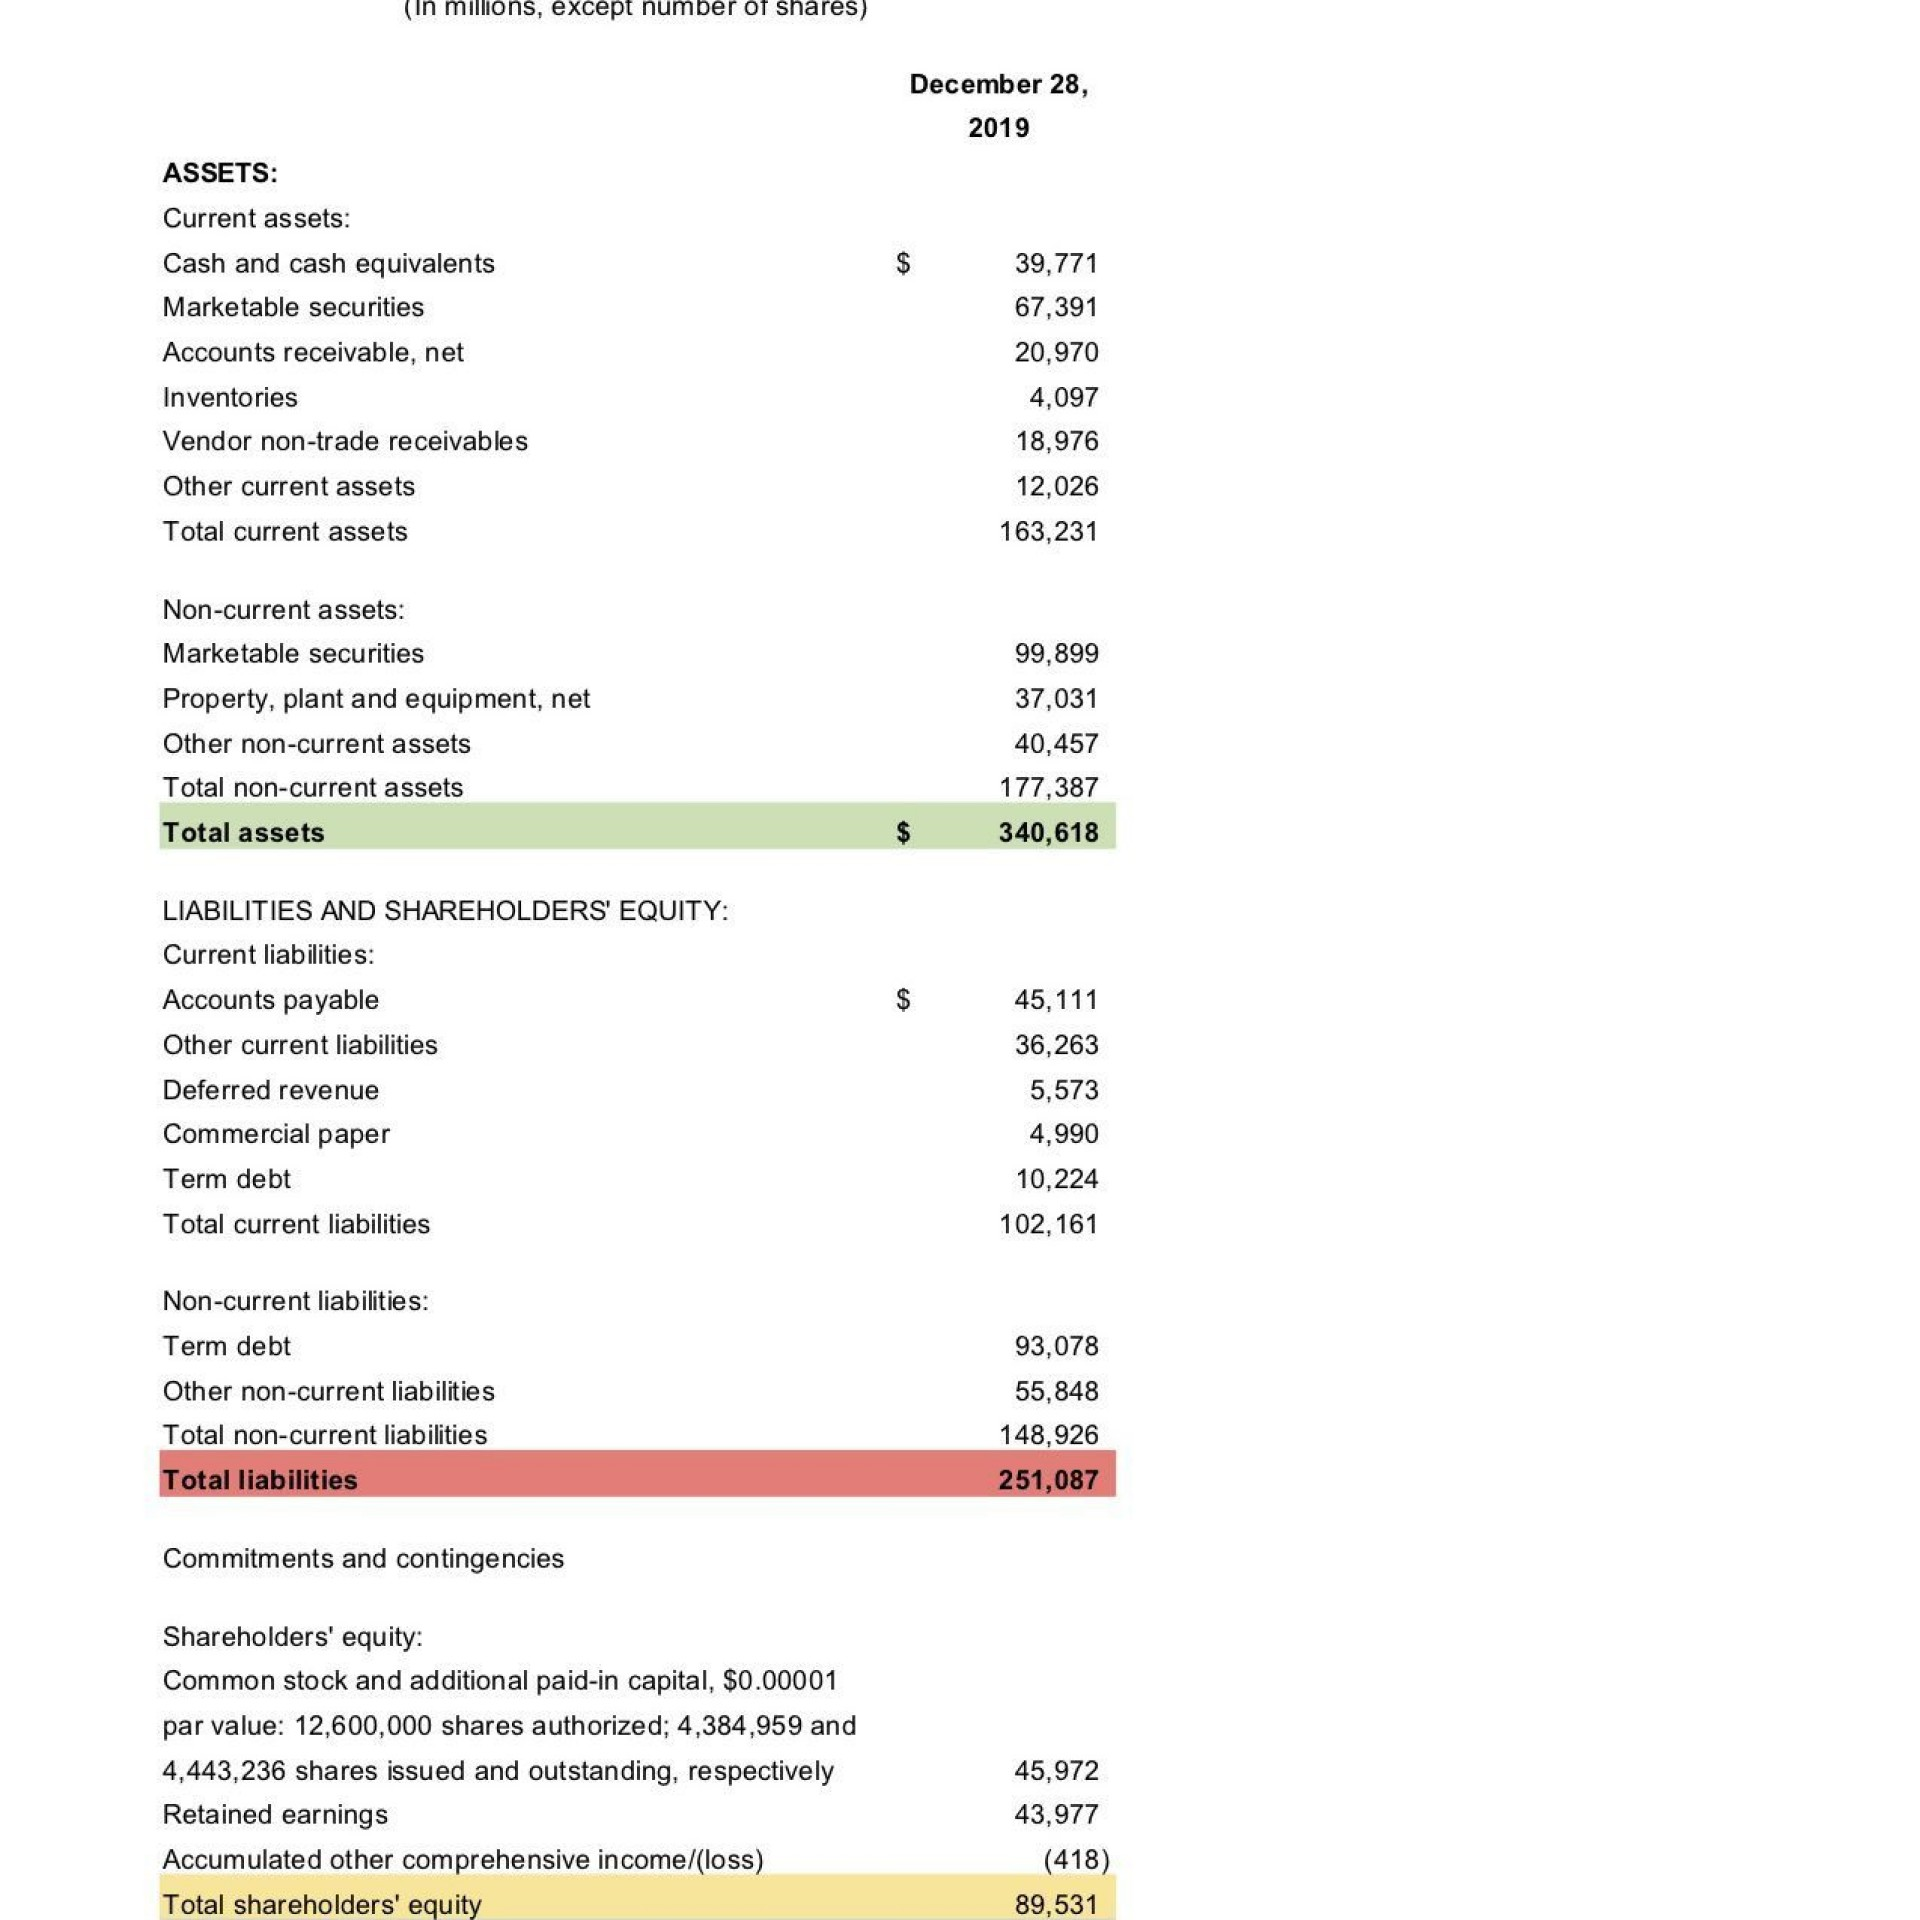 008 Unique Busines Balance Sheet Template Sample  Word Excel Small1920